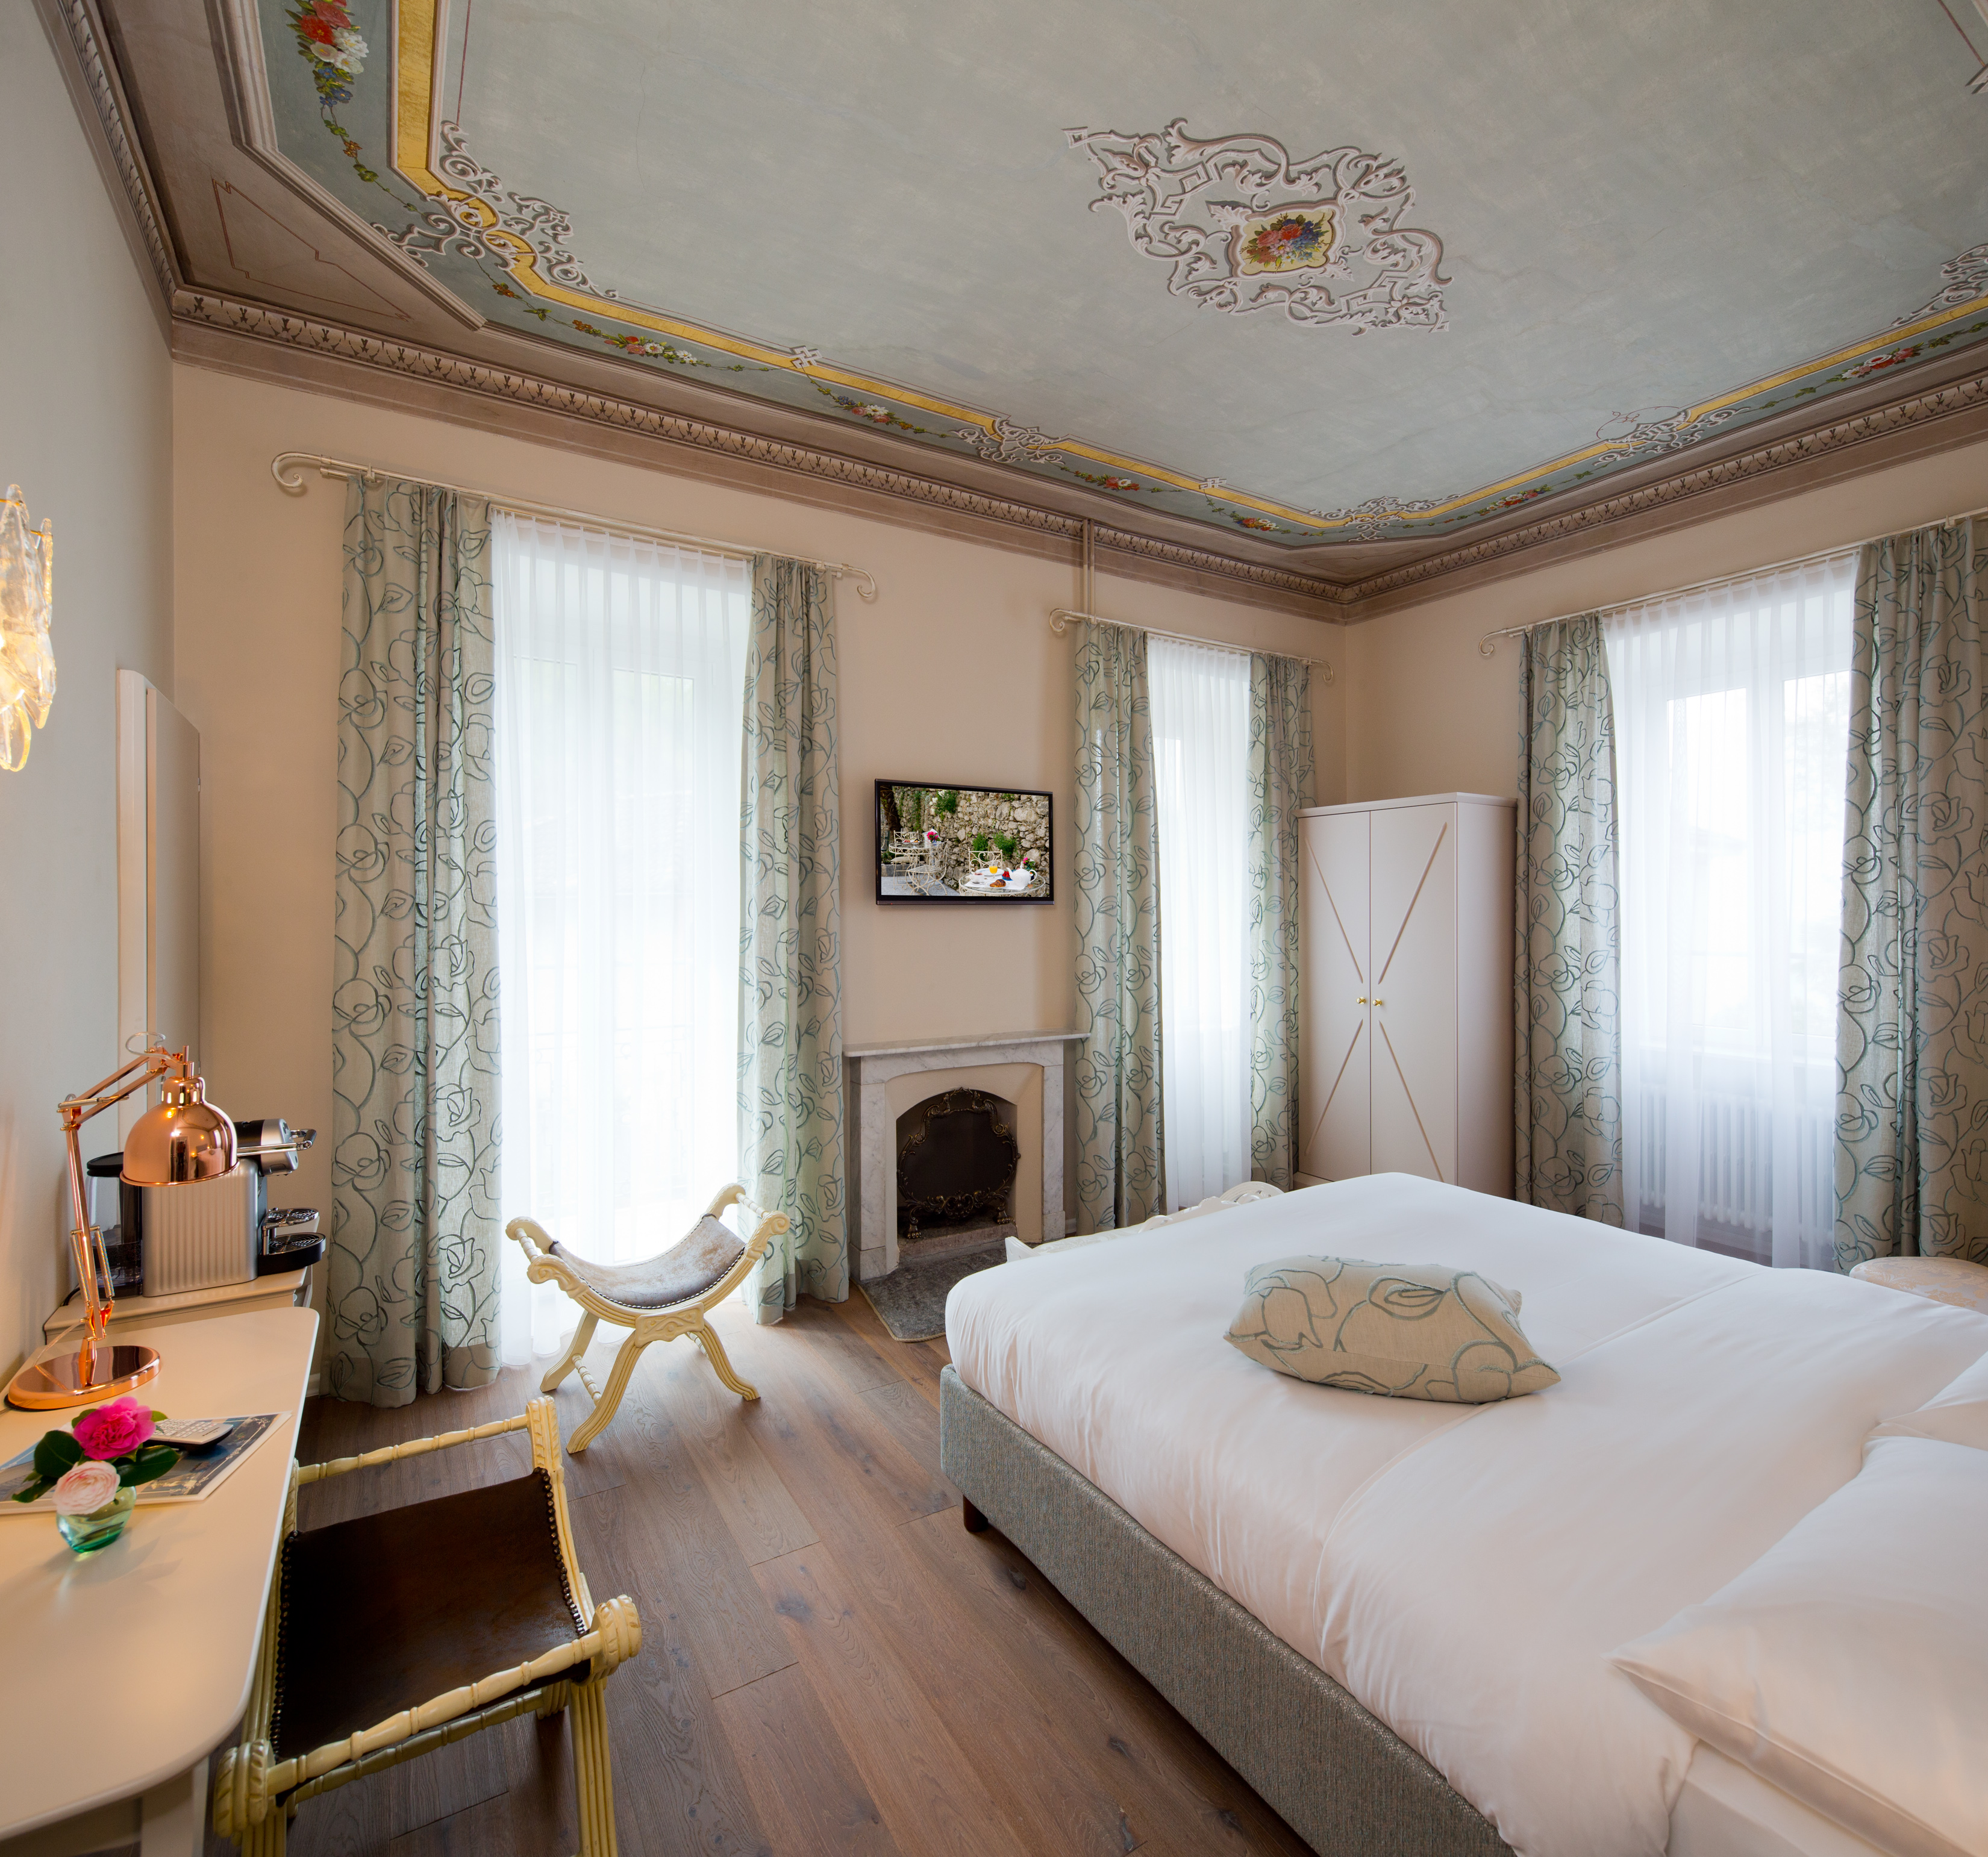 Albergo Villa Sarnia - rooms lookup 10